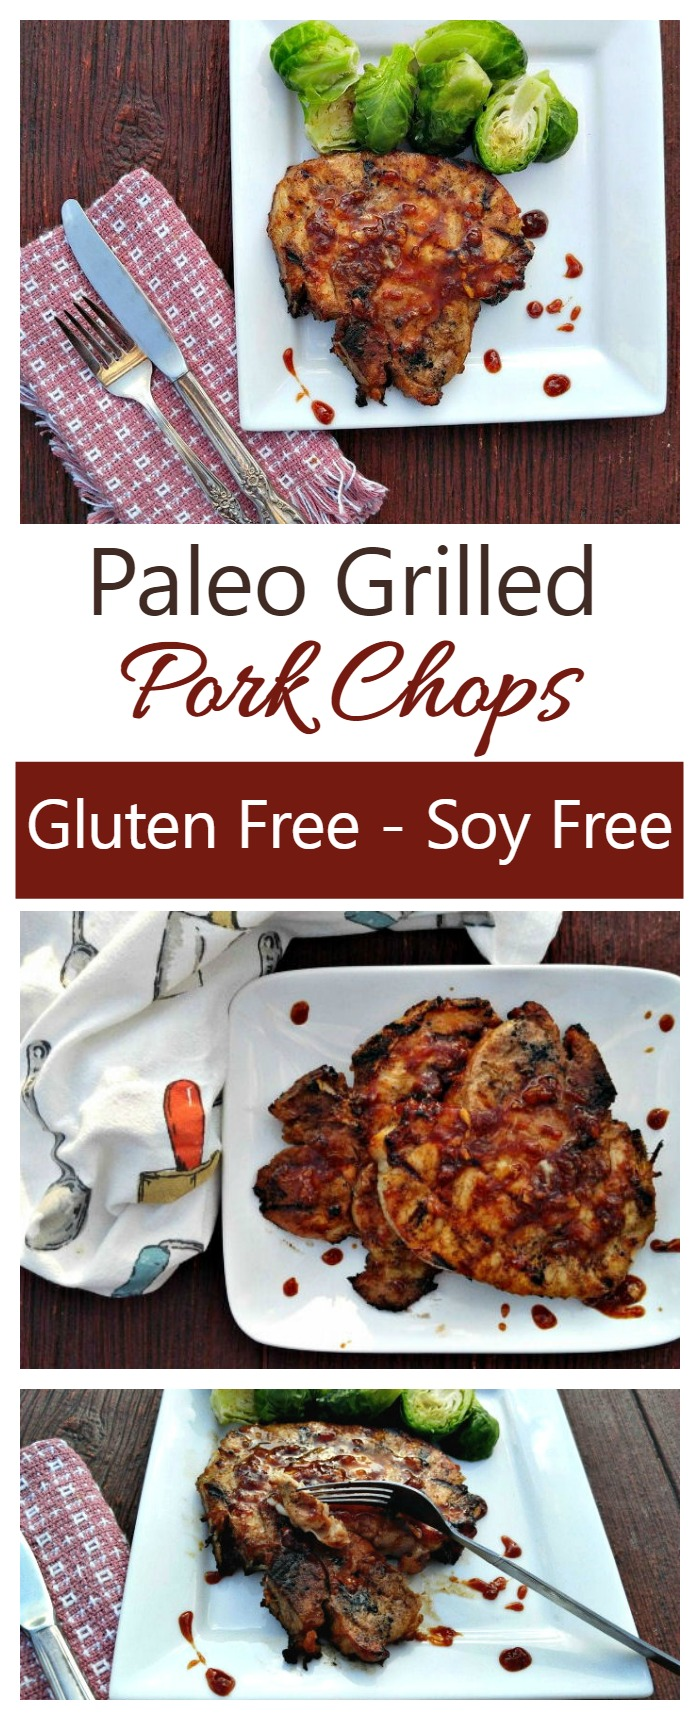 These paleo grilled pork chops are gluten and soy free and just full of flavor and goodness.